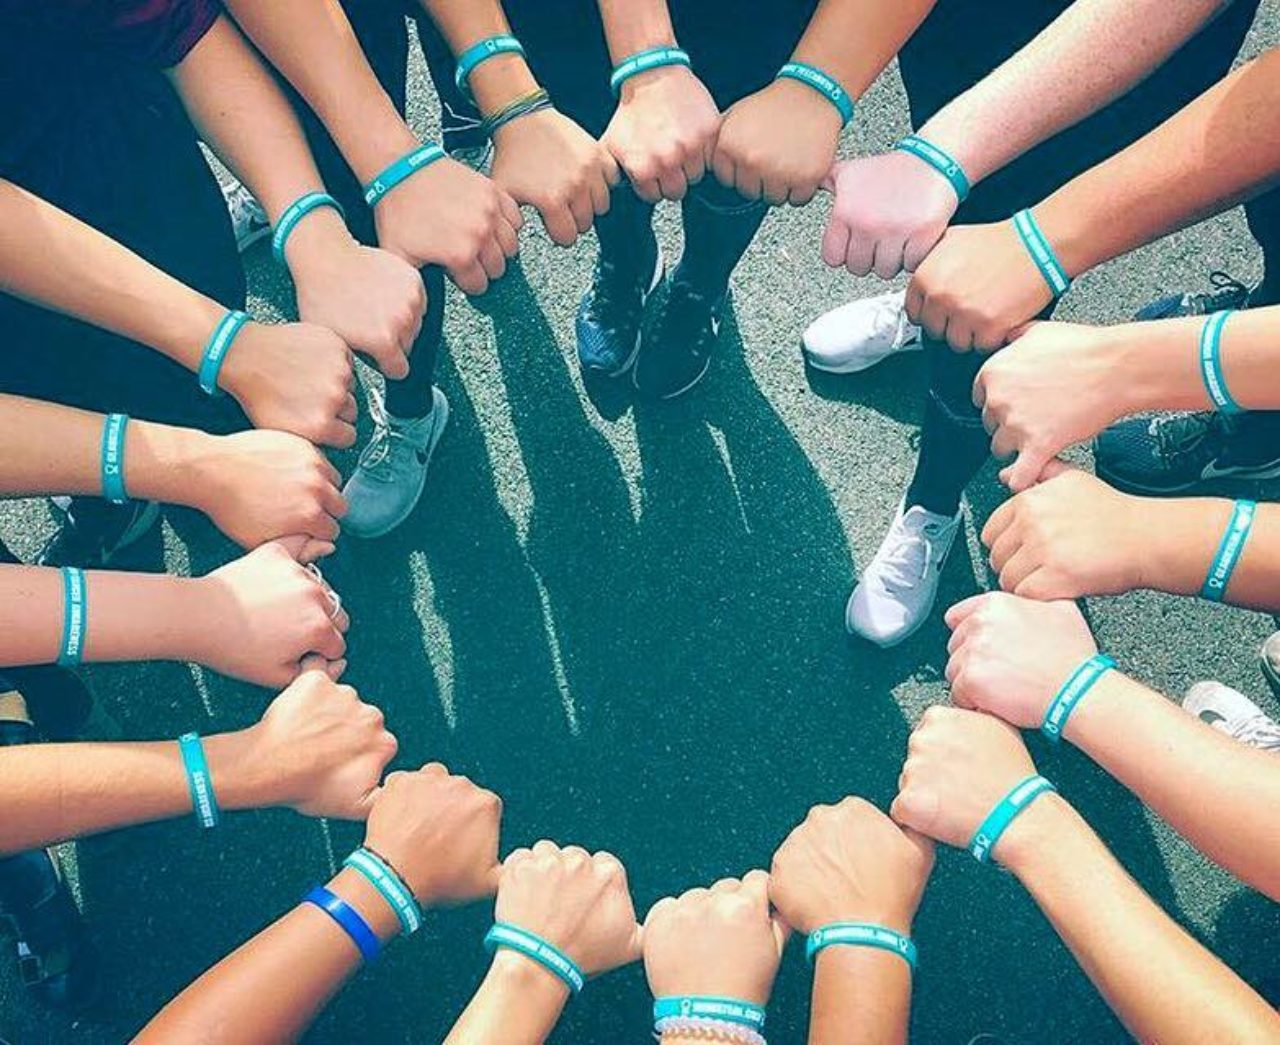 Knights softball team links hands with matching bracelets